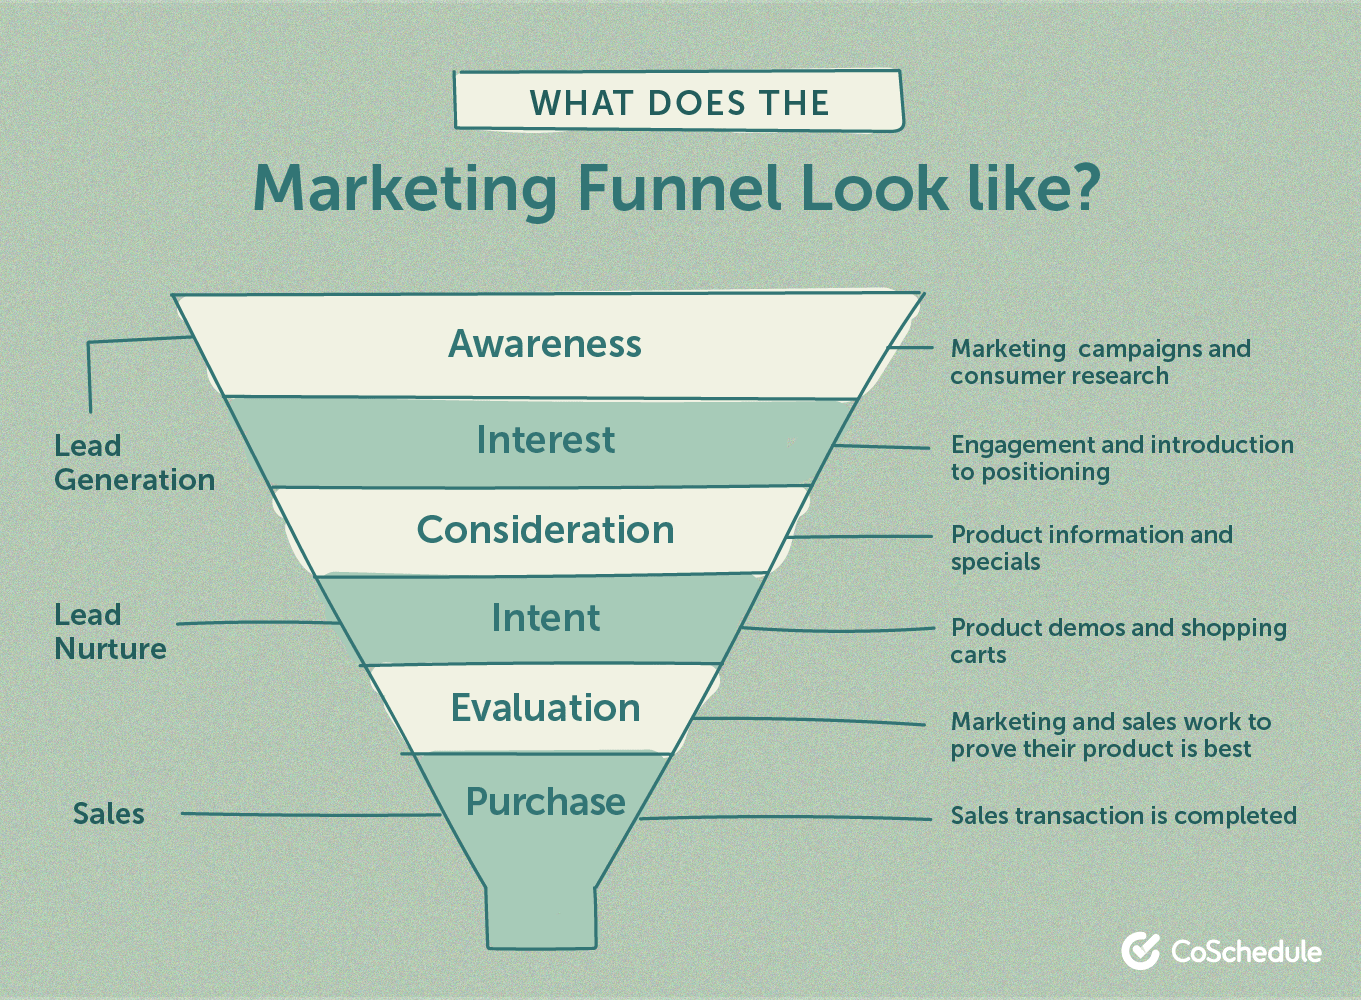 What does the marketing funnel look like?